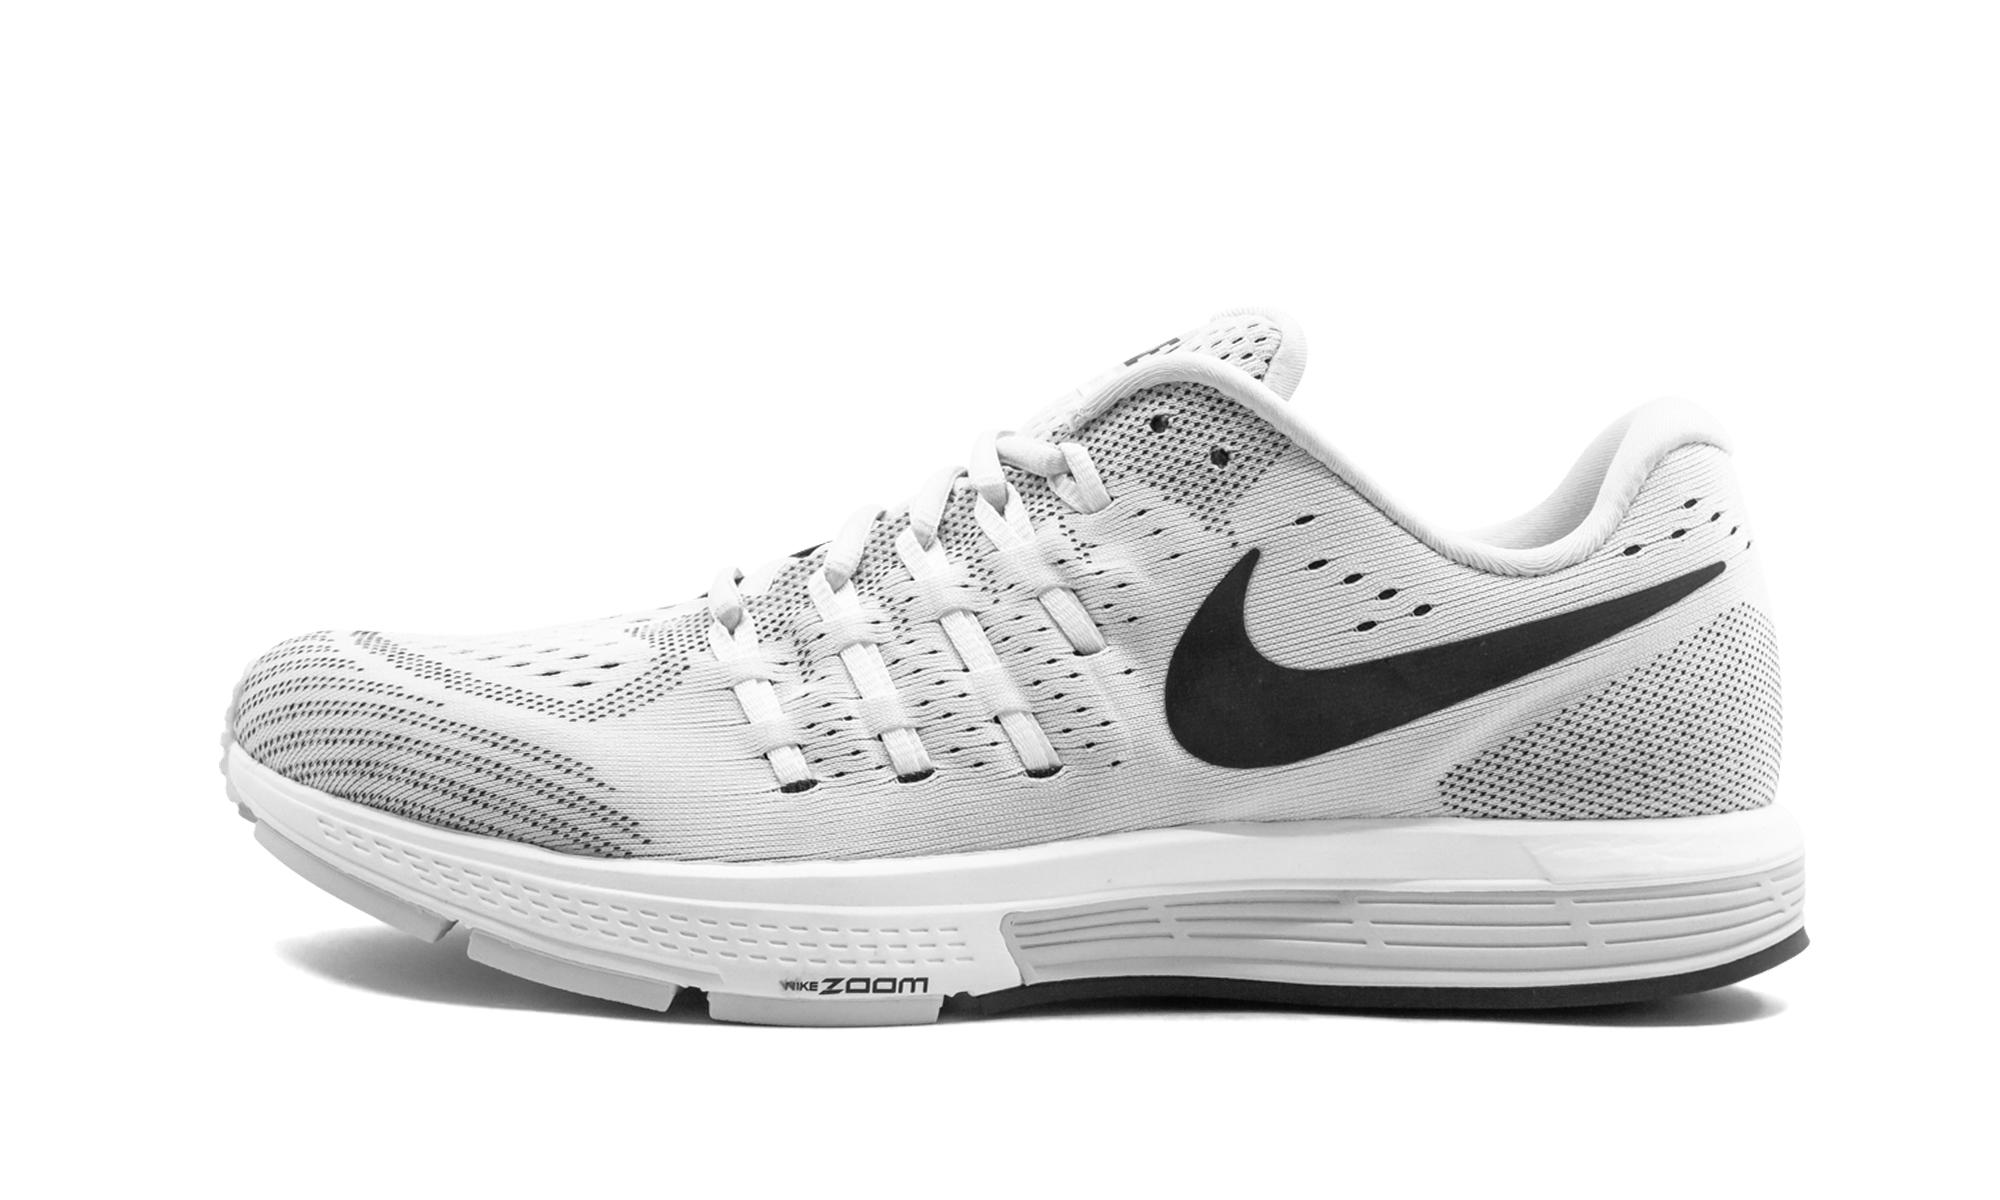 817b554d8126 Nike Air Zoom Vomero 11 for Men - Lyst